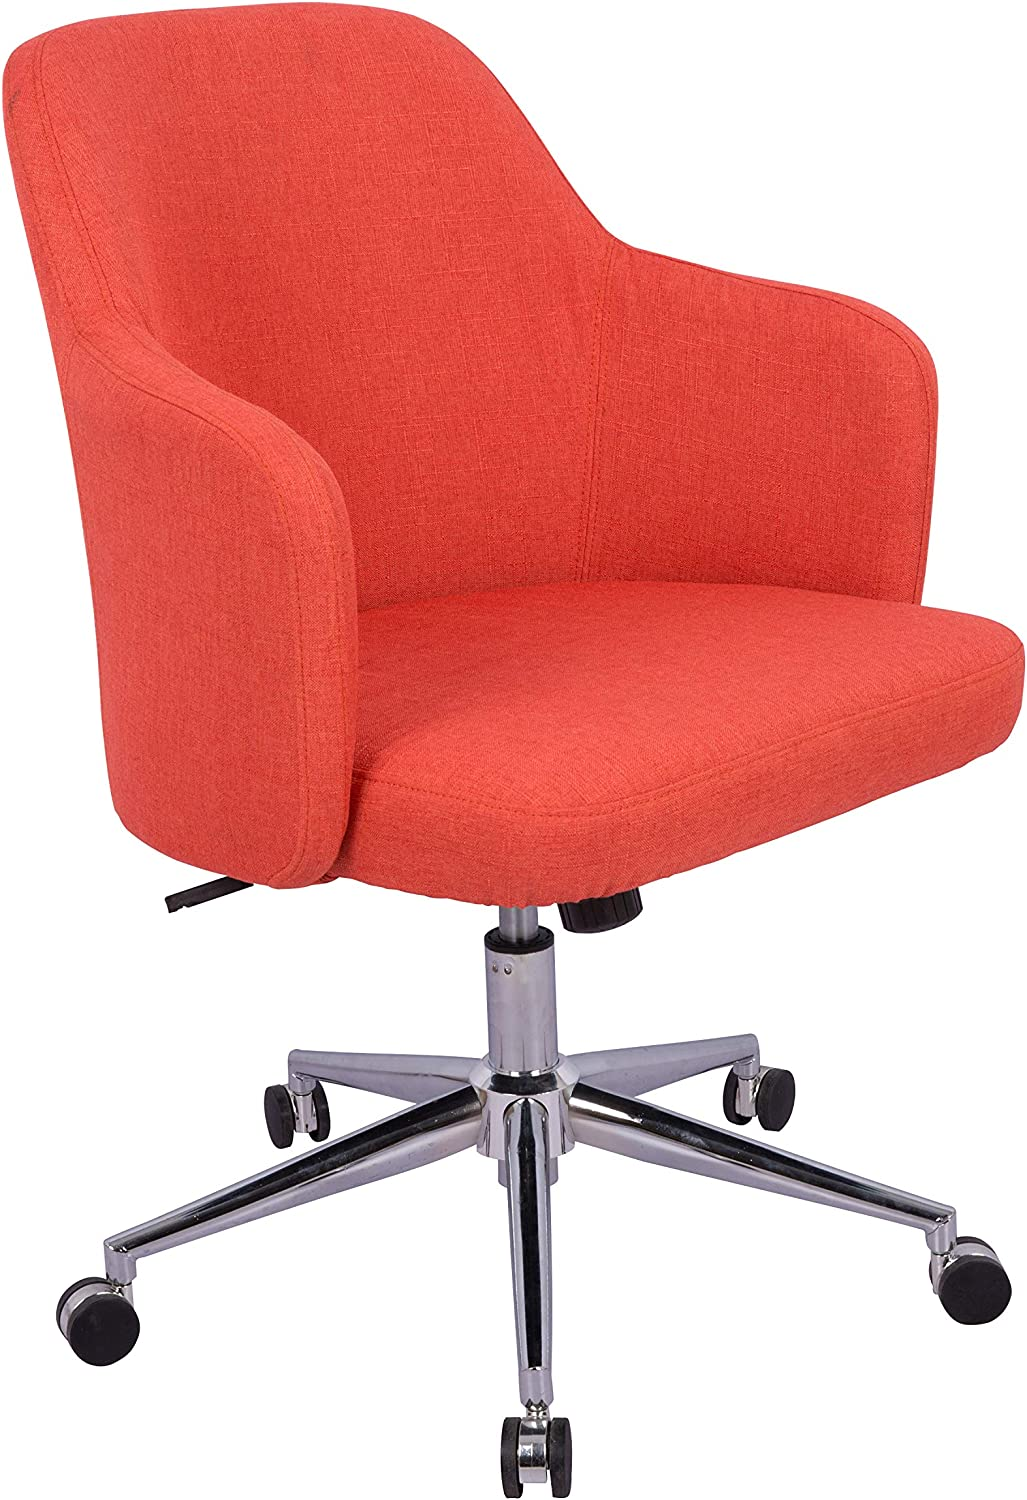 AmazonBasics Classic Adjustable Office Desk Chair - Twill Fabric, Brick Red